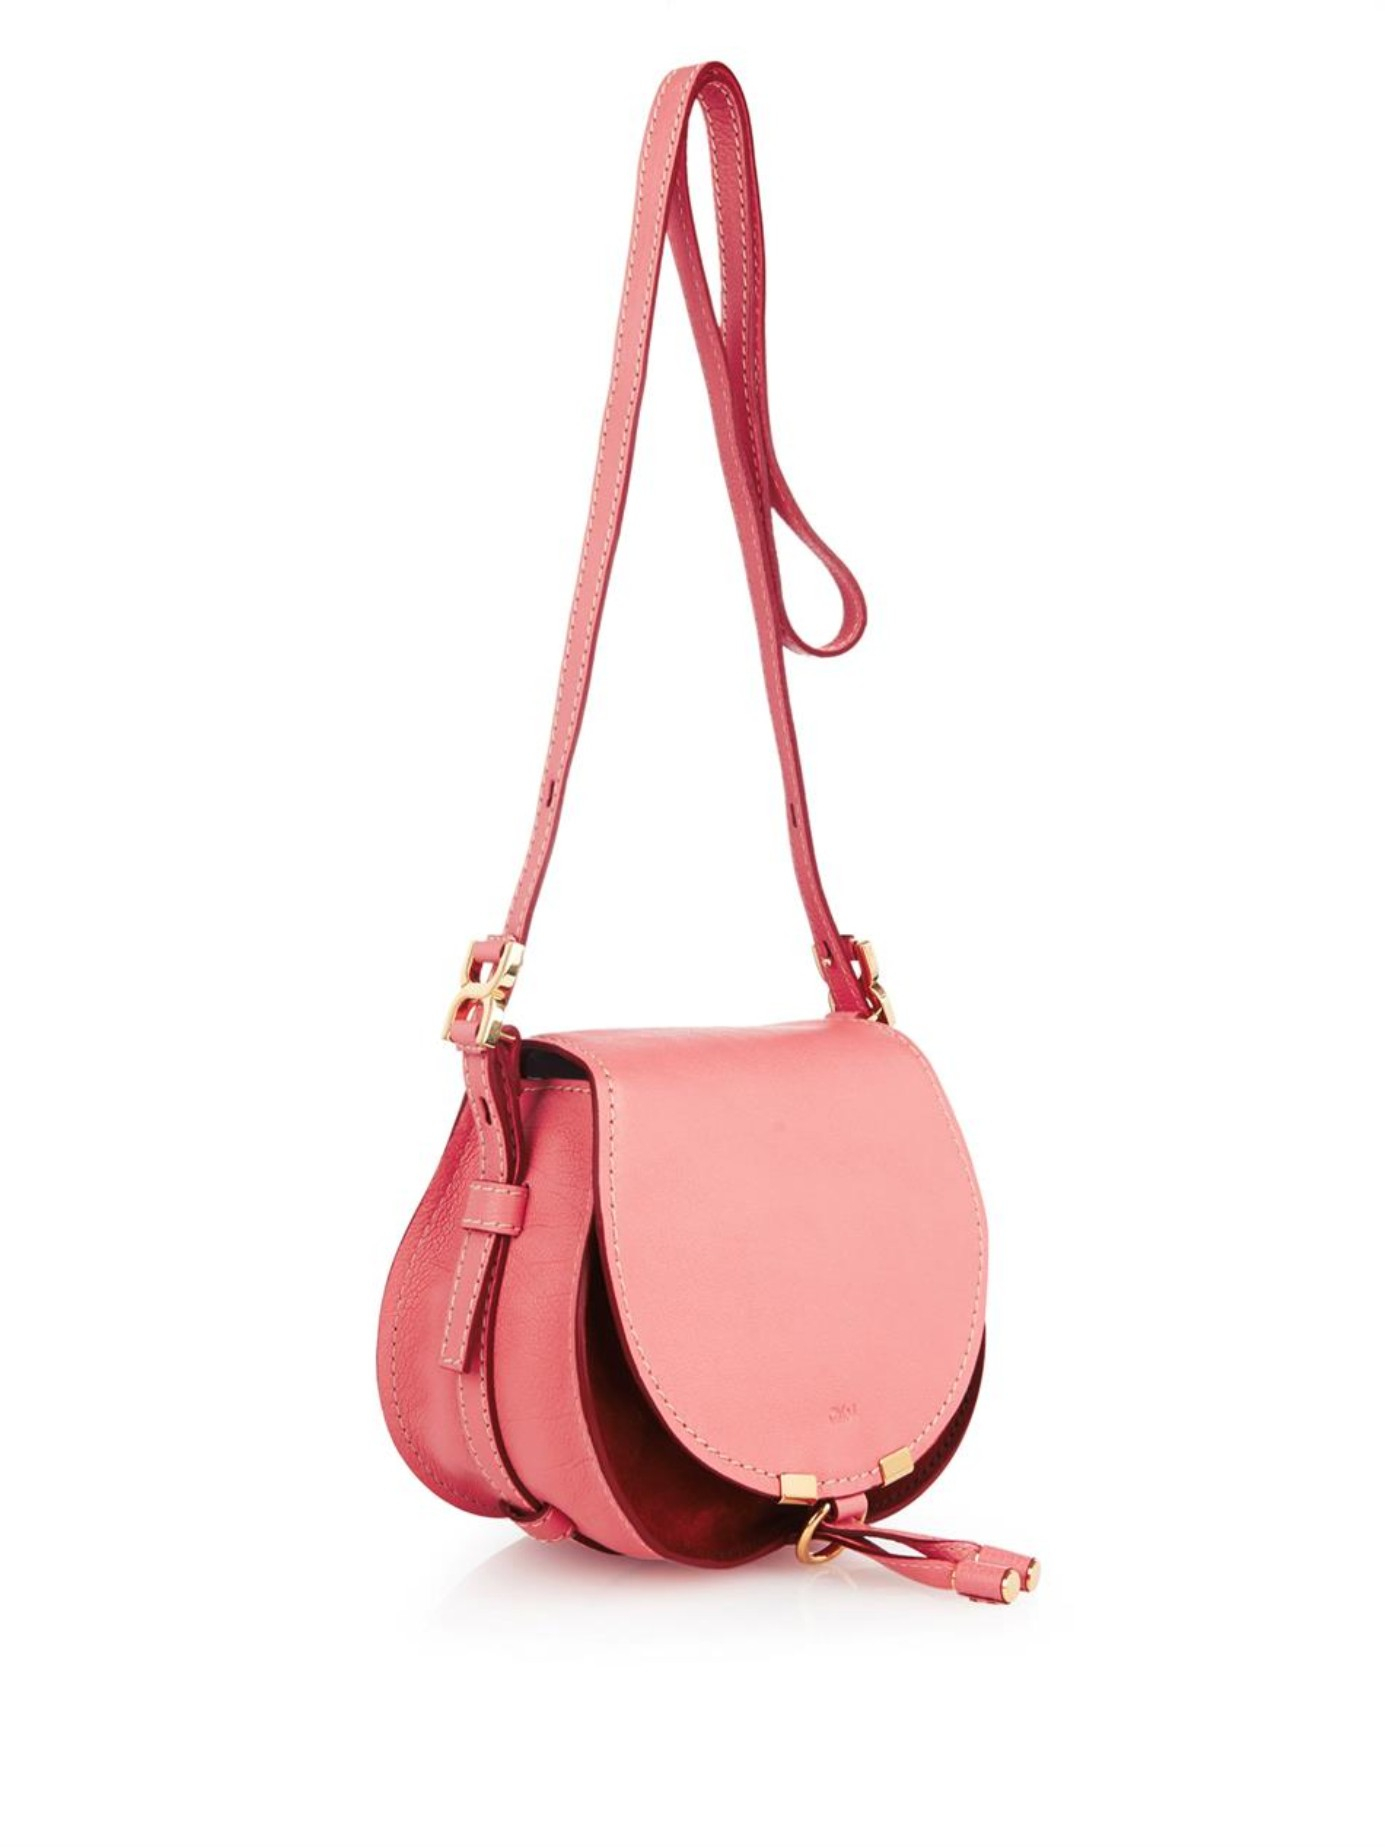 Chloé Marcie Small Leather and Suede Cross-Body Bag in Pink